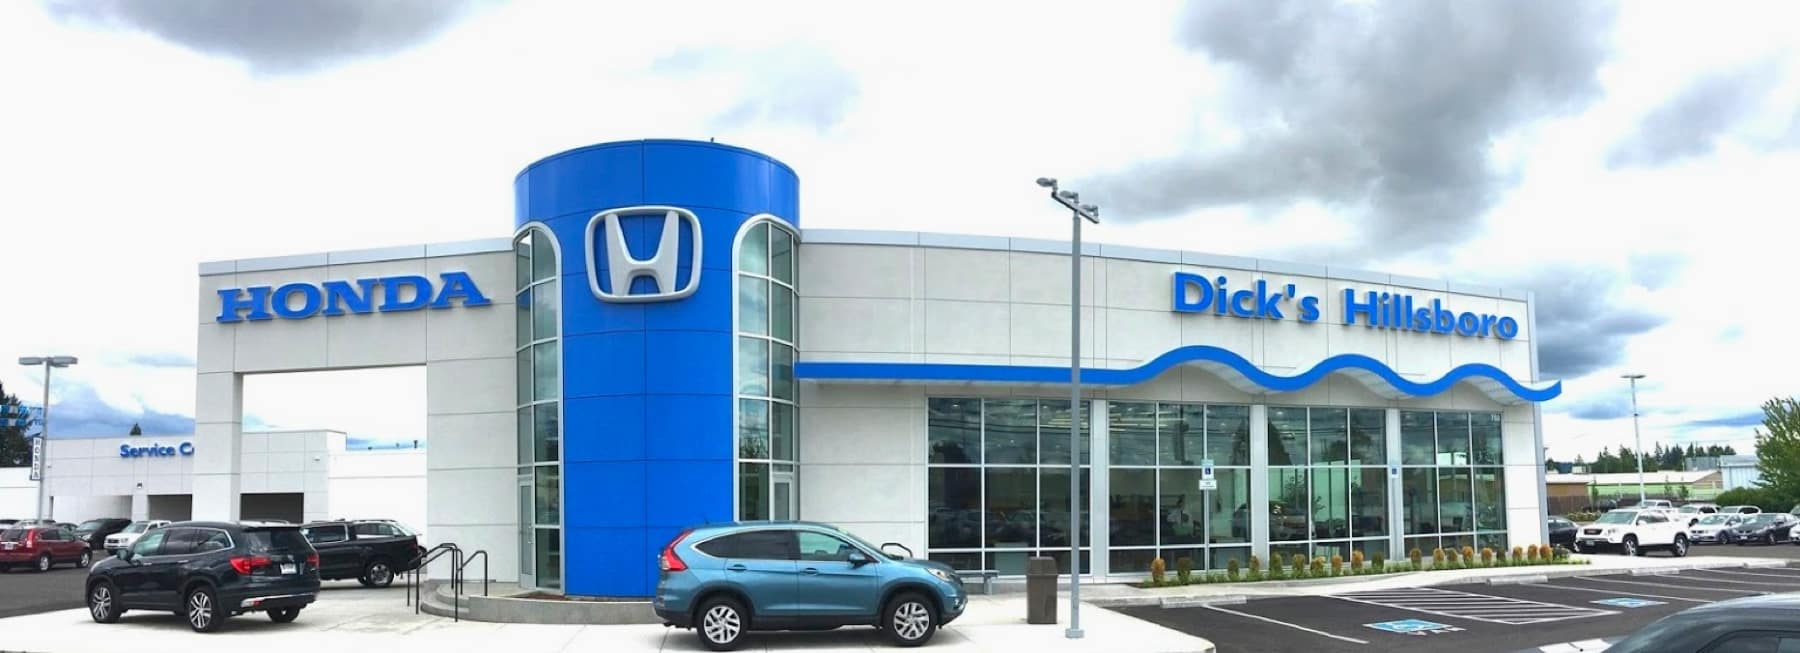 An exterior shot of a Honda dealership